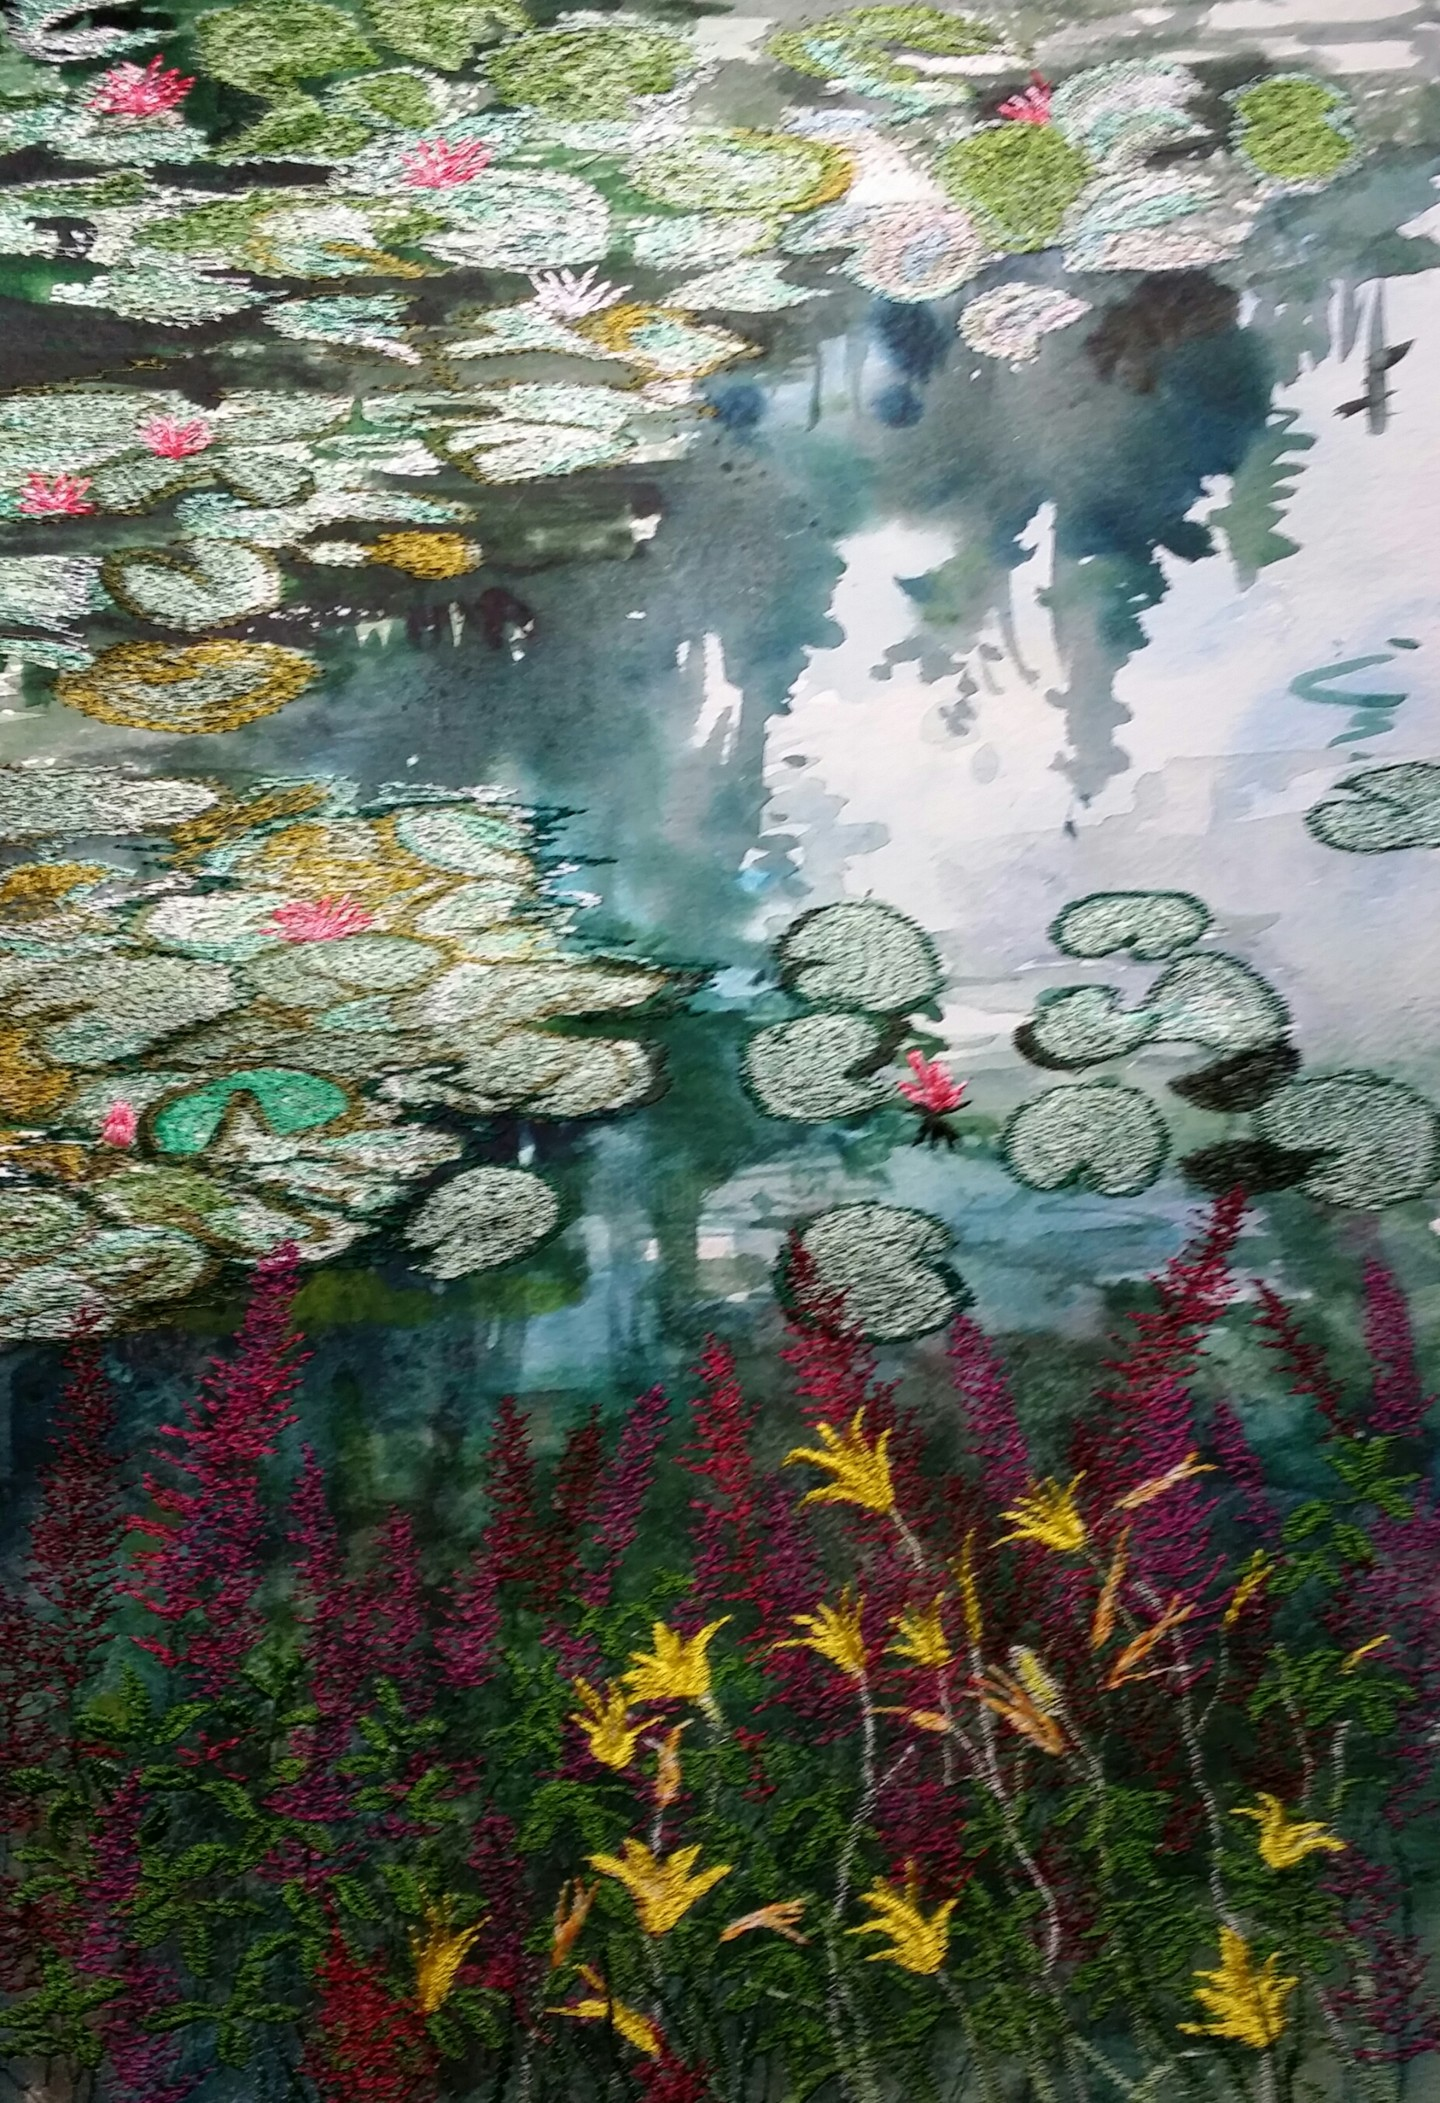 Ann Dunbar - Waterlily dream haven